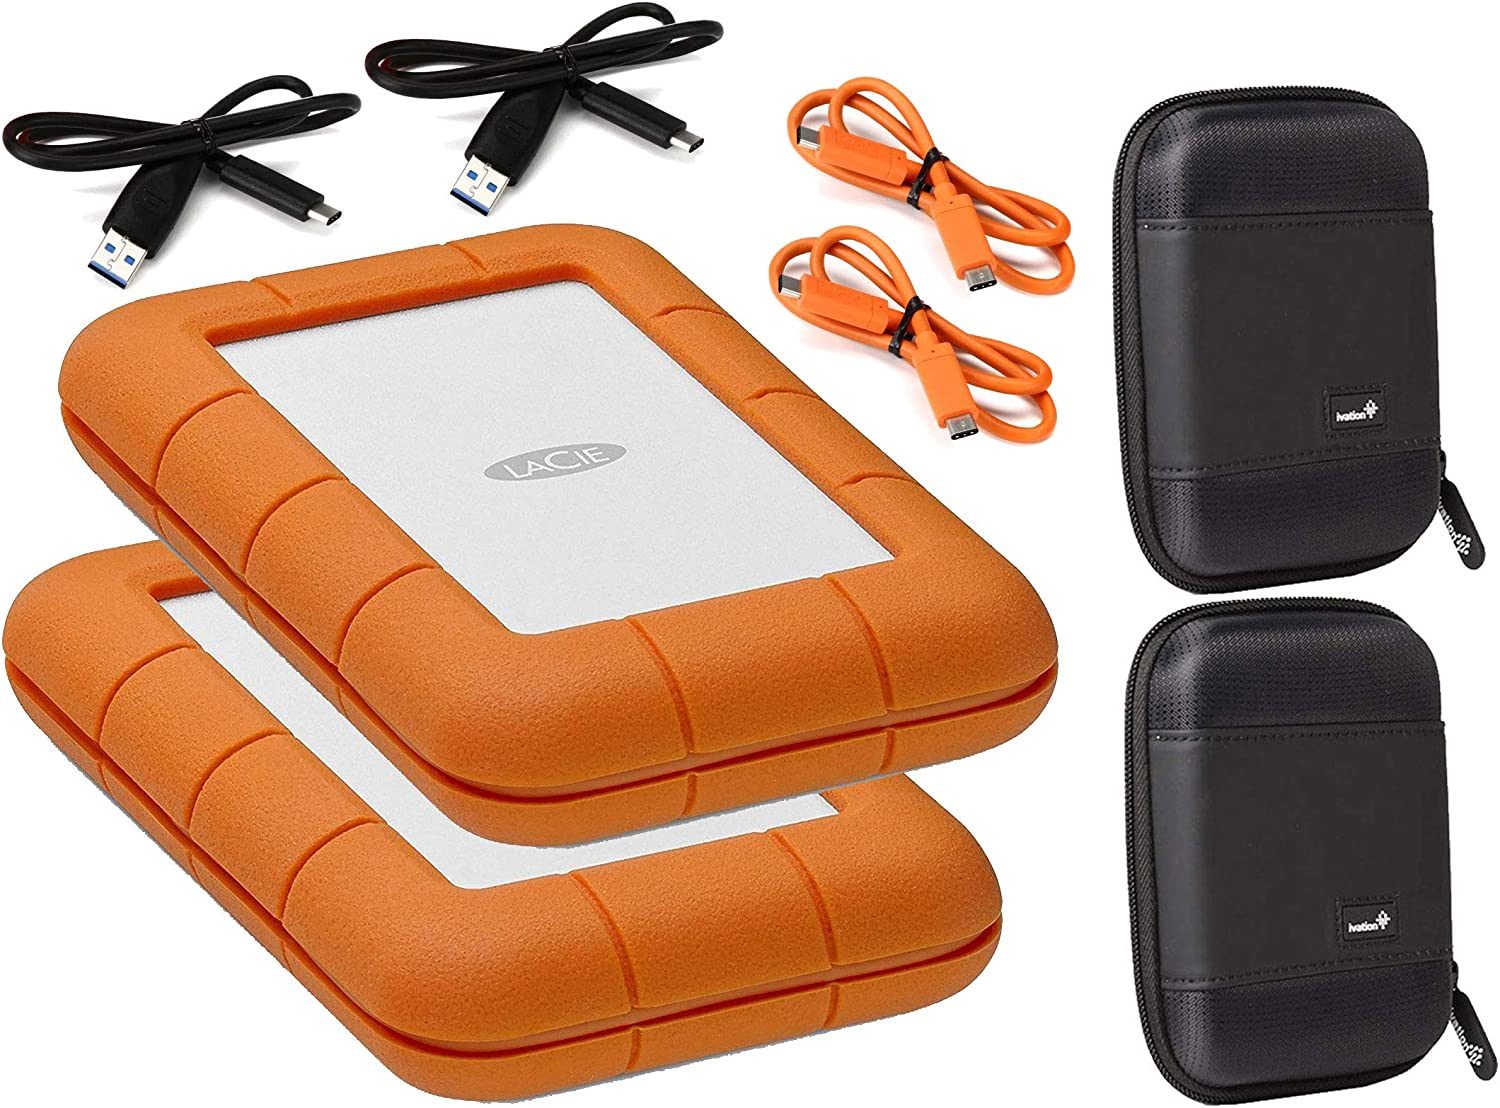 Lacie 2 Pack Rugged 2TB Thunderbolt & USB 3.1 Gen 1 Type-C External Hard Drives Compatible with Mac and PC - Water and Drop Resistance with Compact Pocket Cases